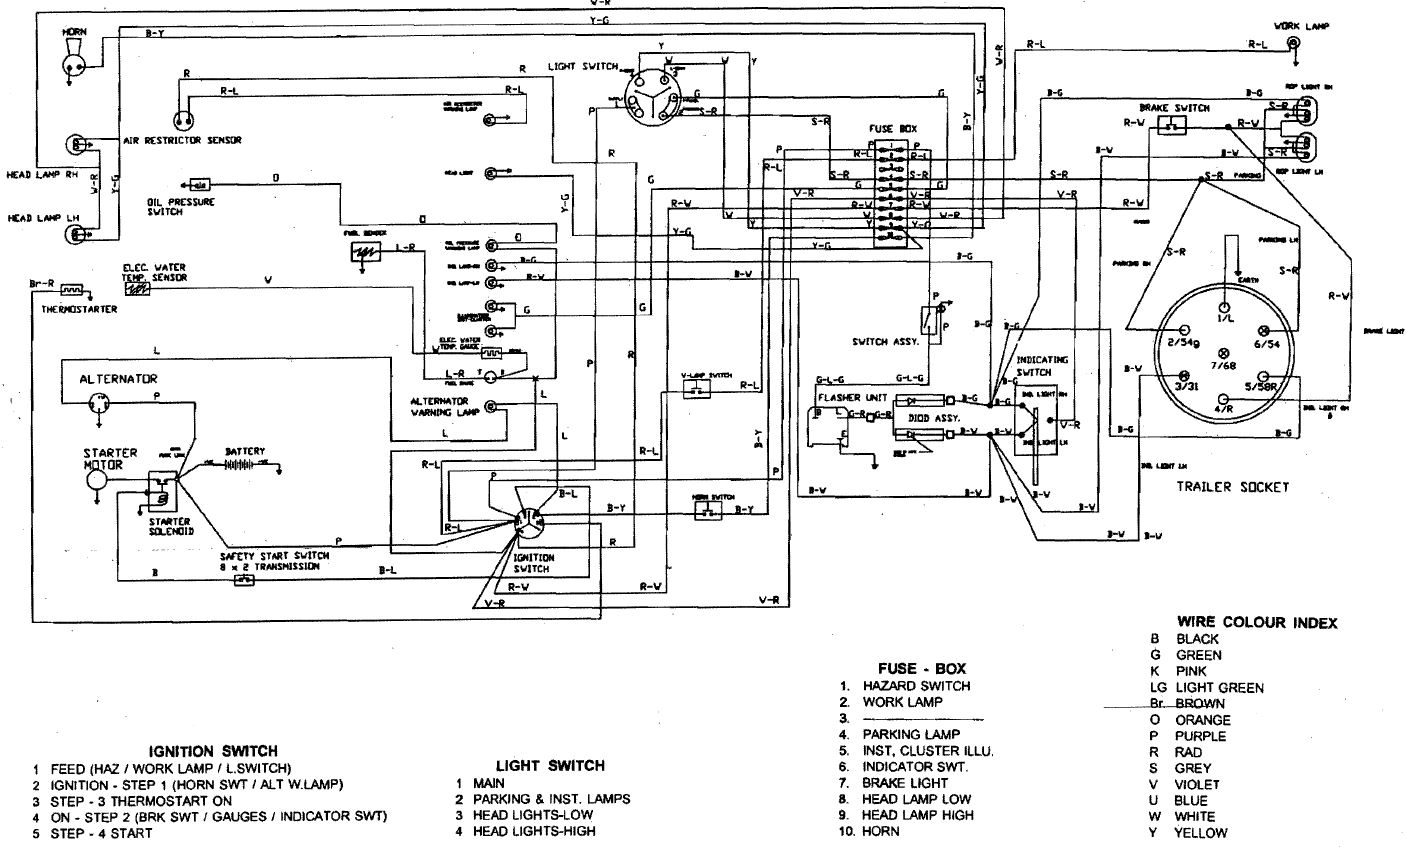 Starter Wiring Diagram Jd 2640 | Wiring Diagram on jd 4230 tractor, mf 165 wiring diagram, ih super a wiring diagram, ford 3000 wiring diagram,